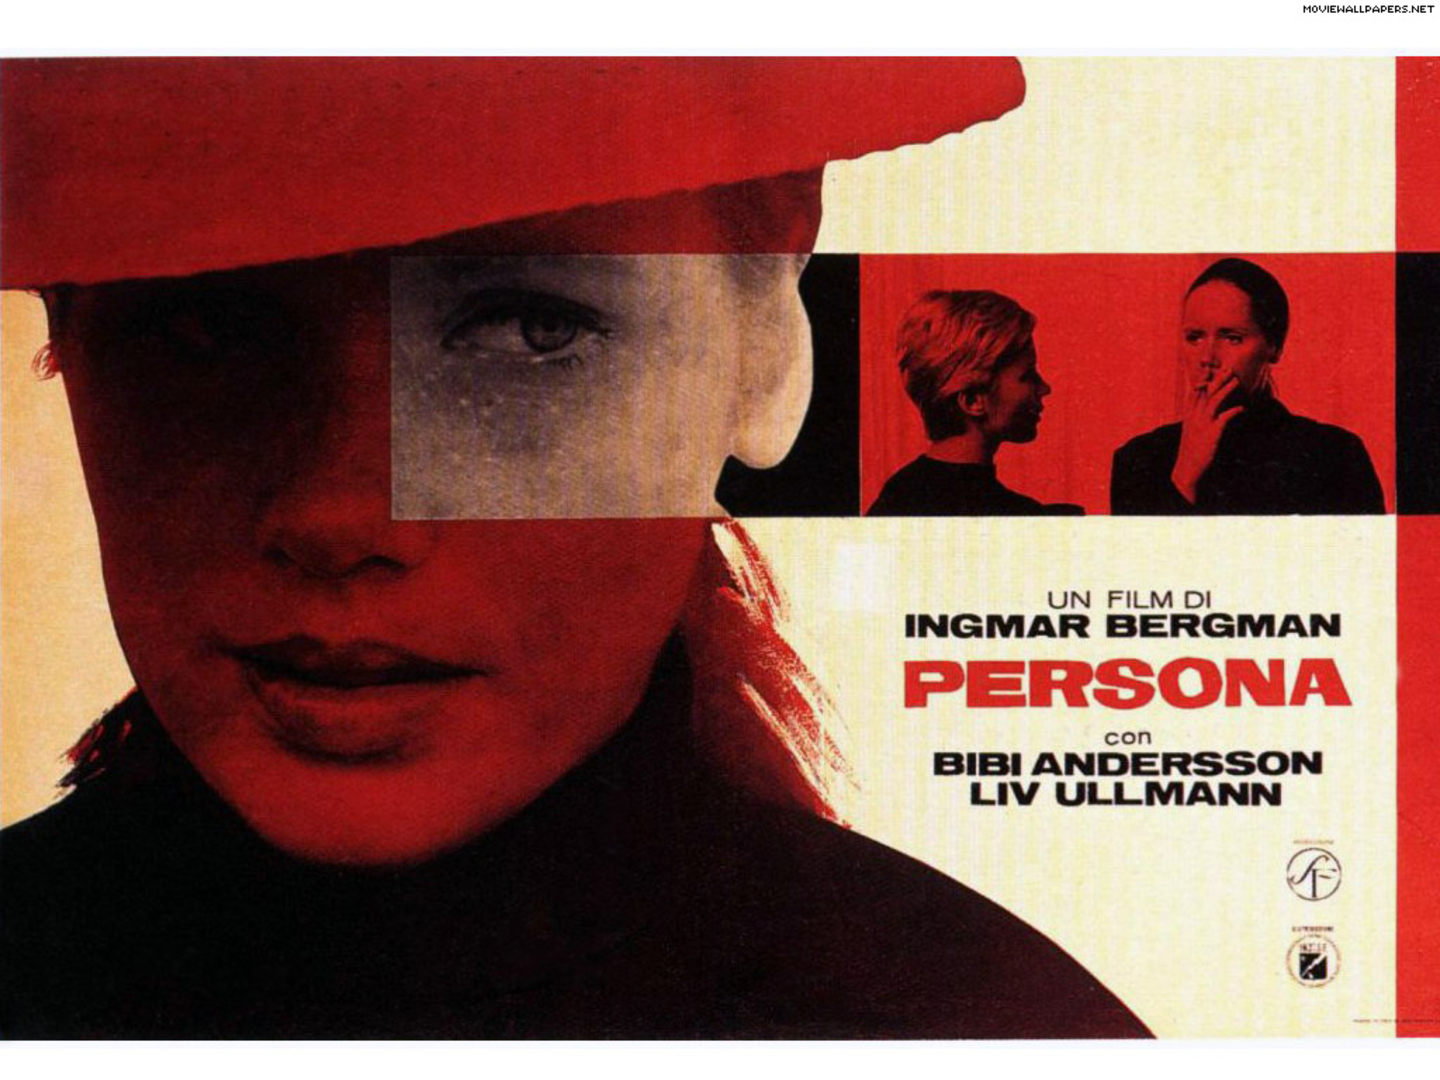 an analysis of persona by bergman #criterionmonth review- persona: bergman's masterful visual feast dares to tackle identity and modernity of the sixties woman criterion month is a massive collaboration across 5 websites in honor of ingmar bergman's 100th birthday and of the films of the criterion collection.